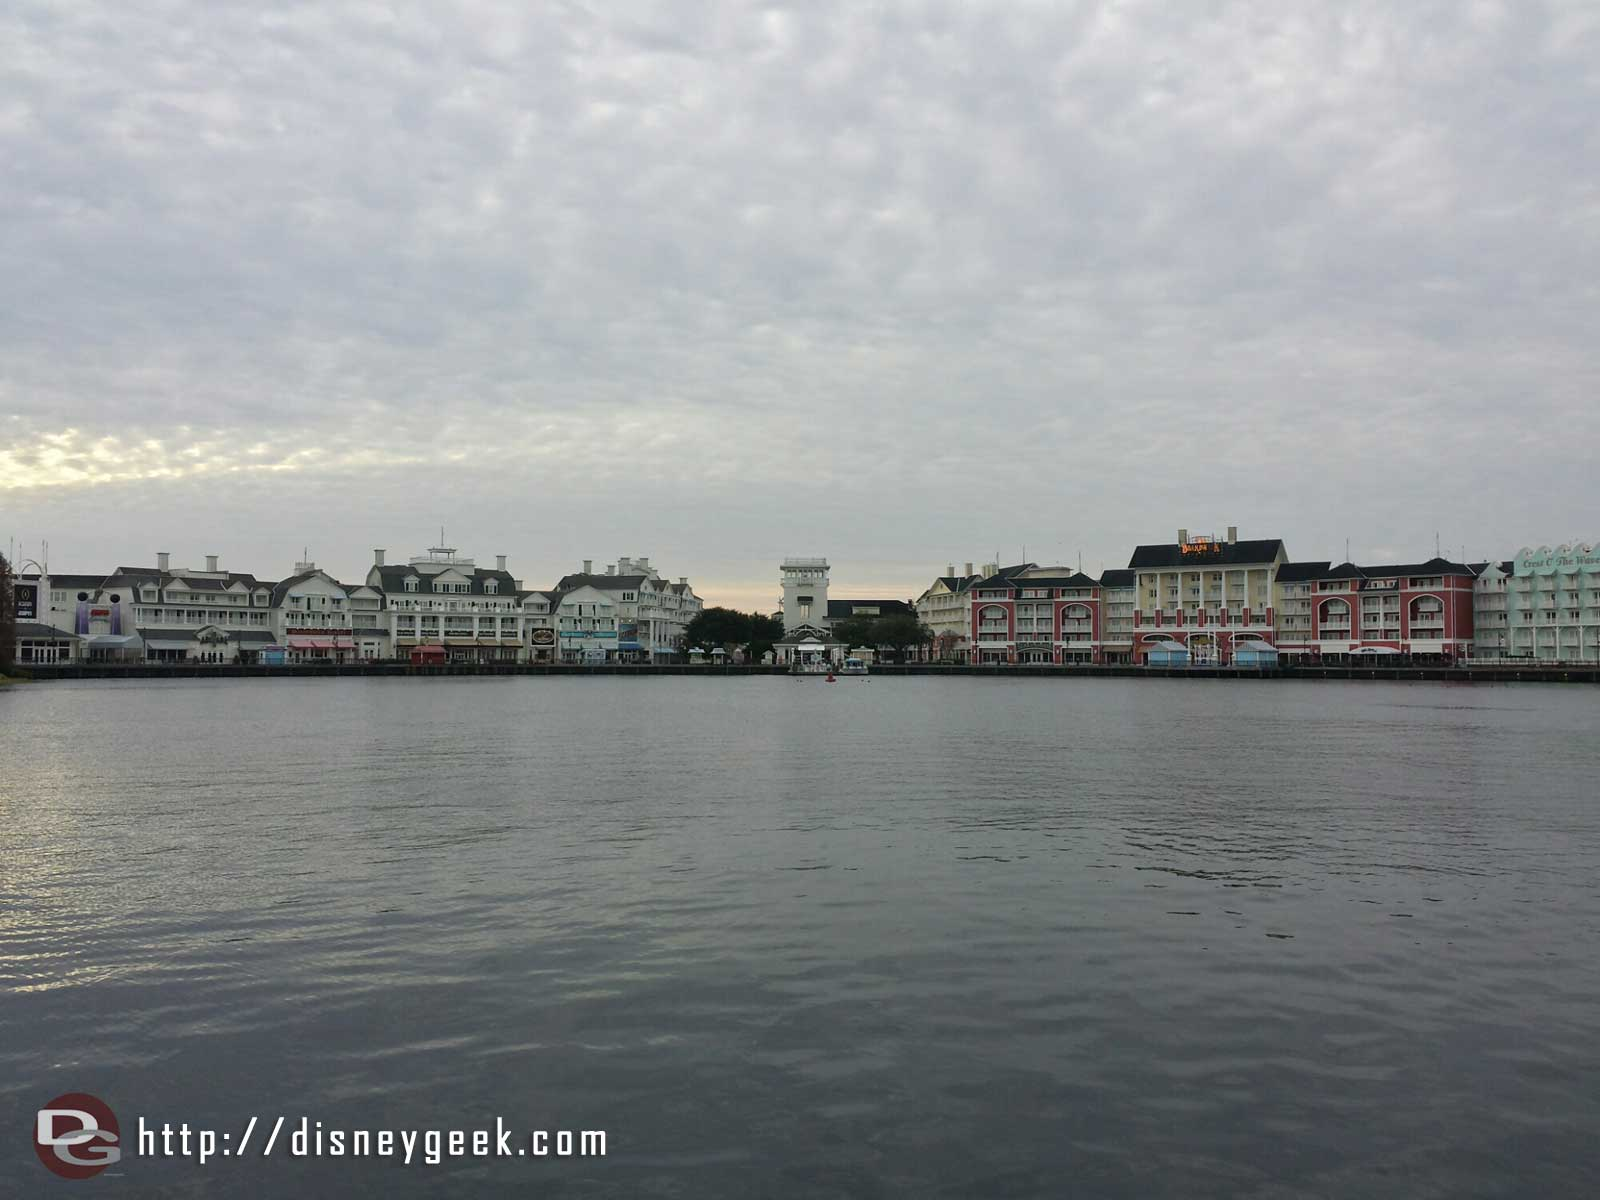 The Boardwalk Resort from the pier #WDW